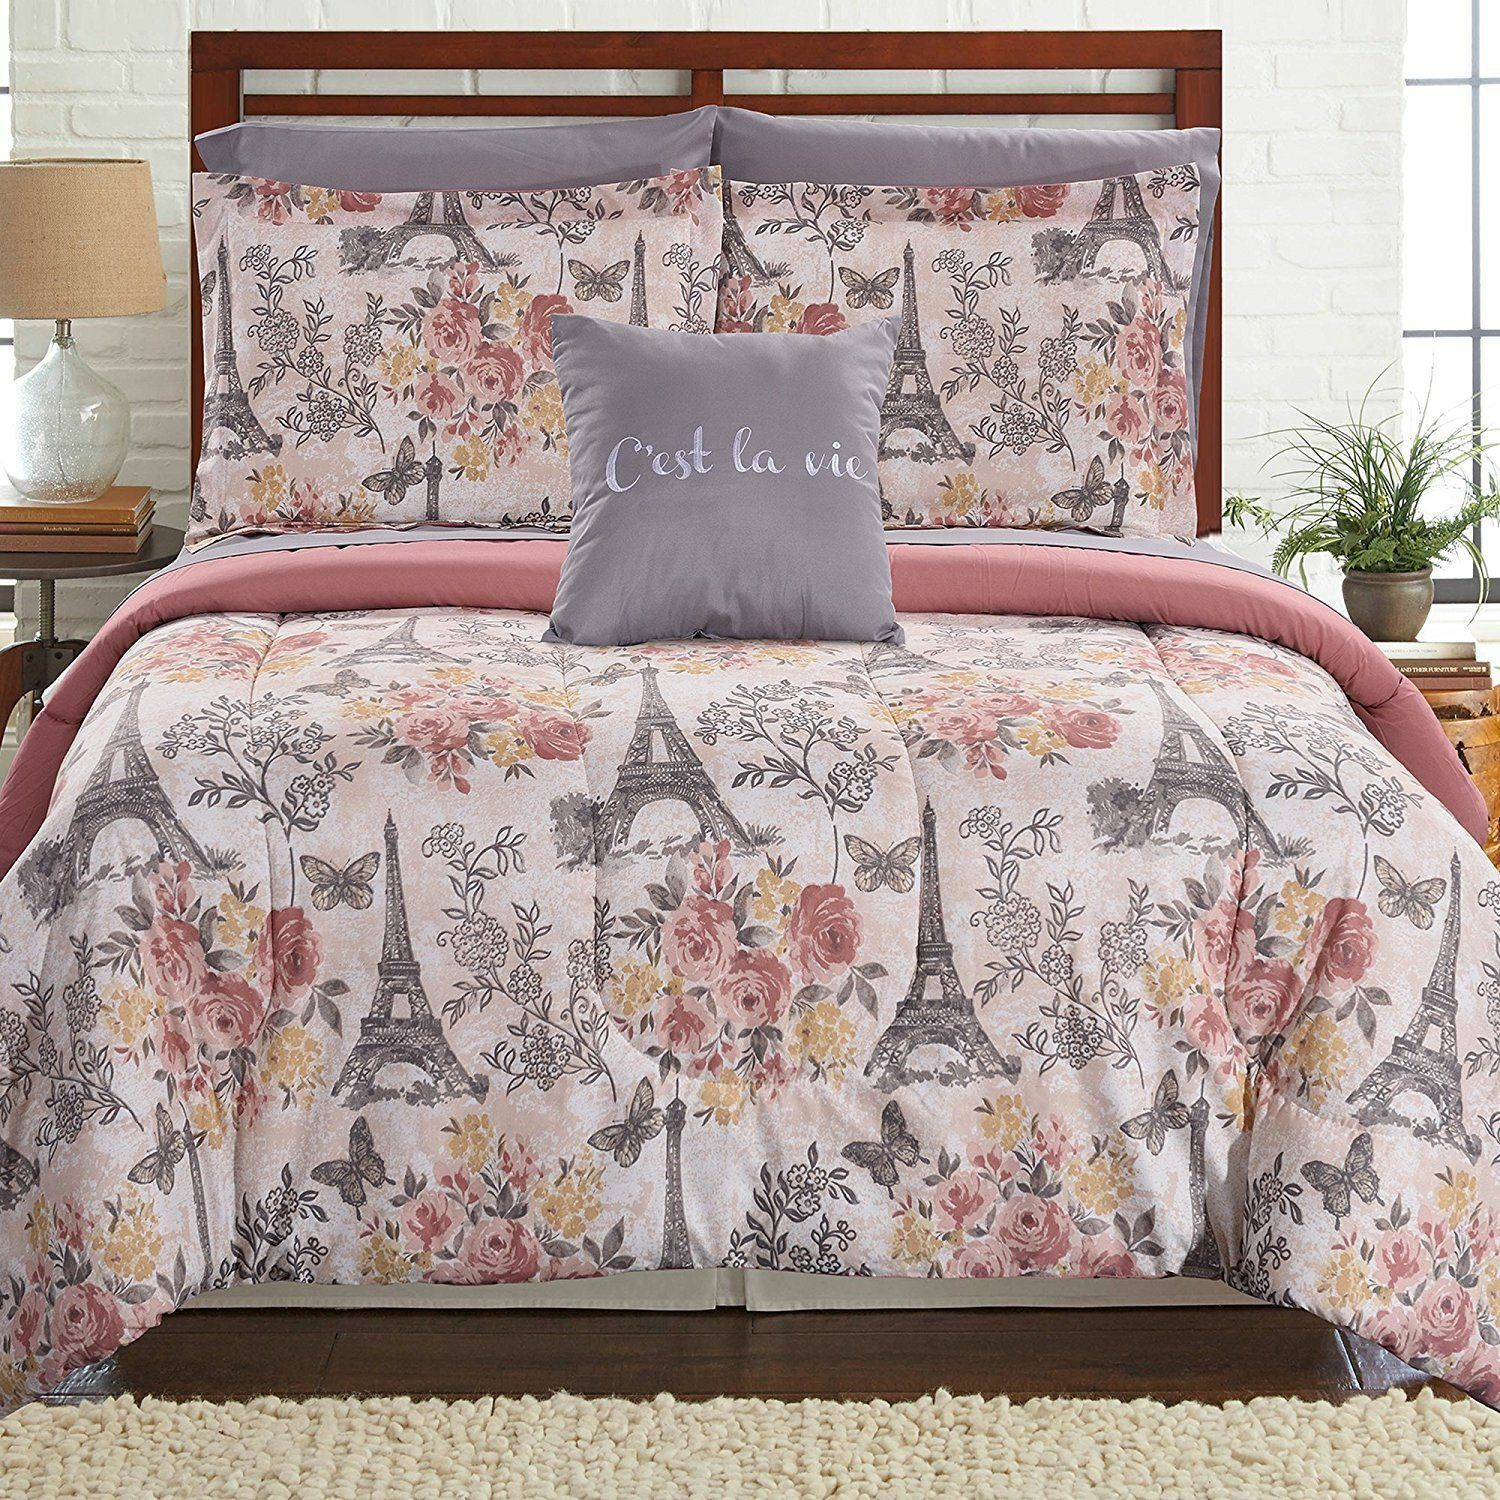 Luxurious Blaush grau Floral Paris 8 pcs Reversible King Queen Comforter Set